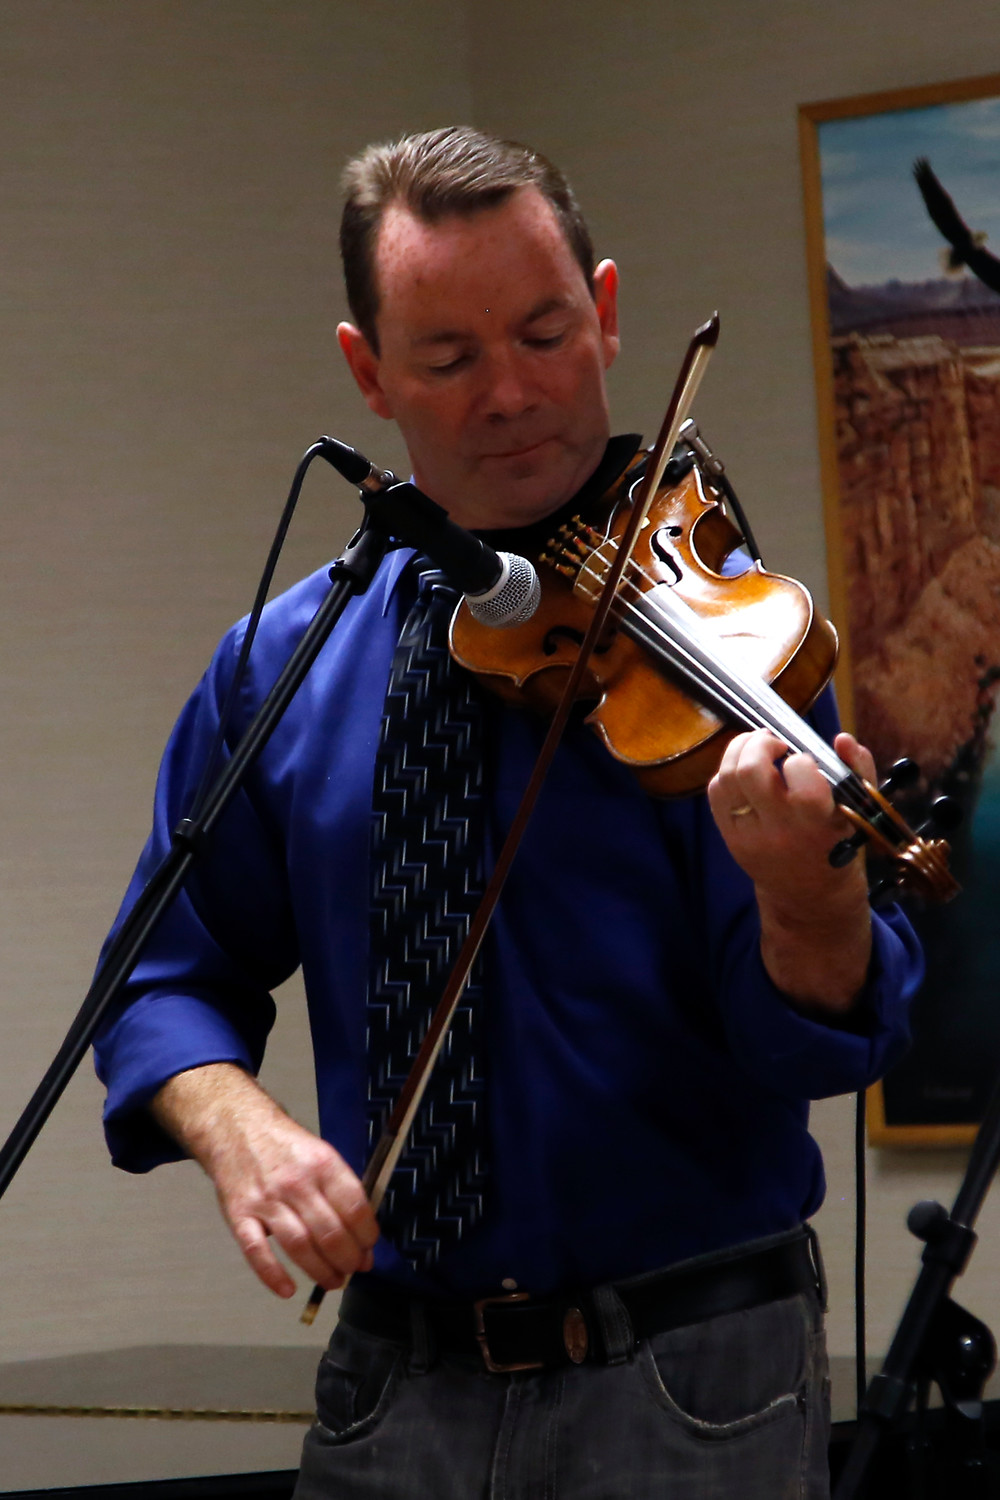 Eamon O'Roake, born in Ireland, joined the band in its 37th season and became the band's fiddle player.